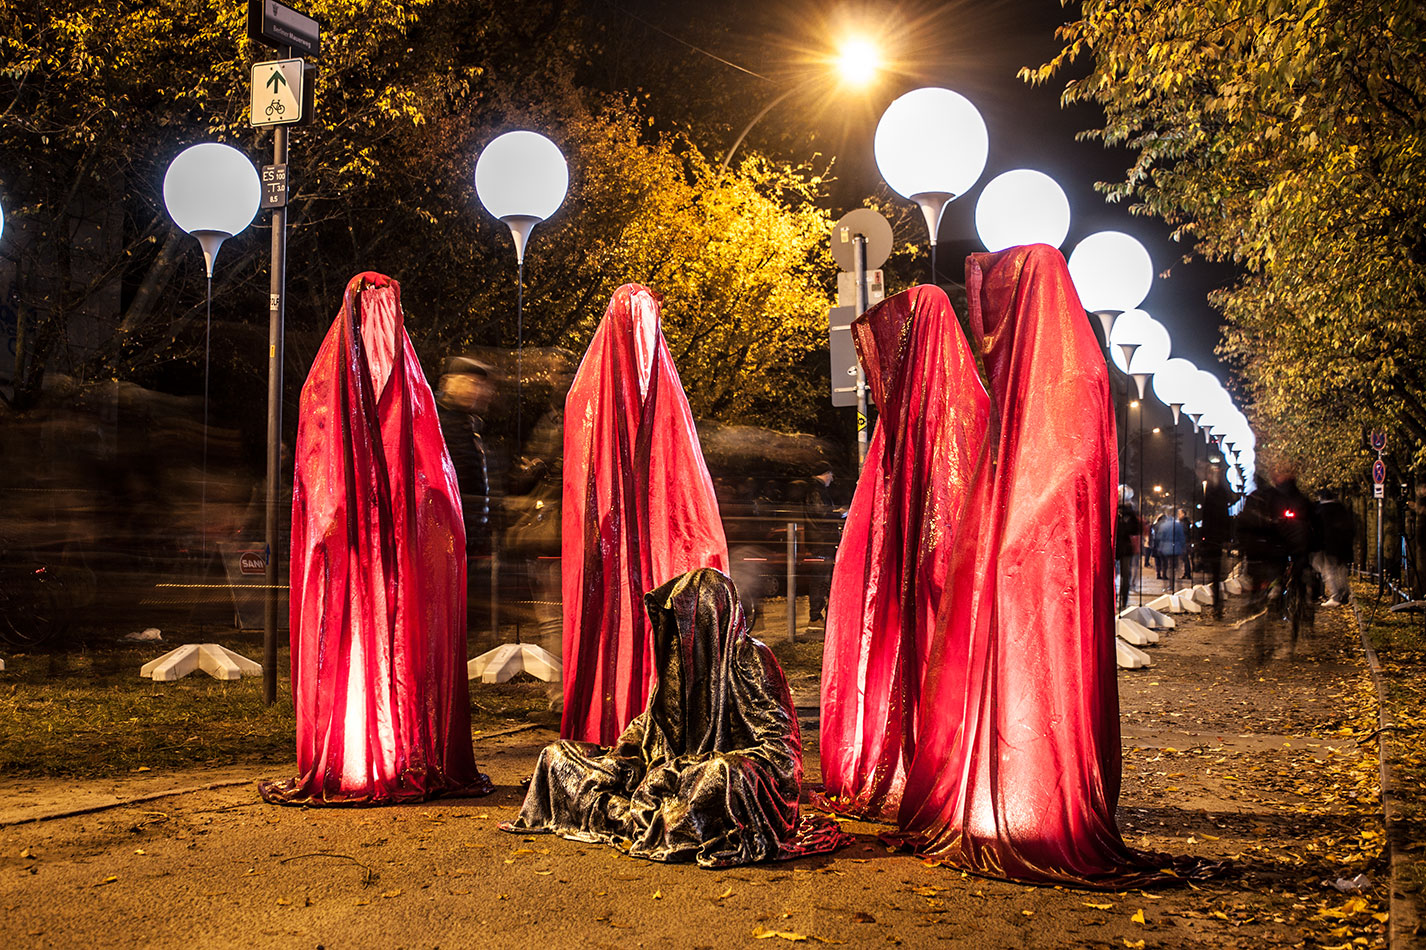 25-jears-wallfall-berlin-germany-contemporary-fine-art-show-arts-design-guardians-of-time-manfred-kili-kielnhofer-4351